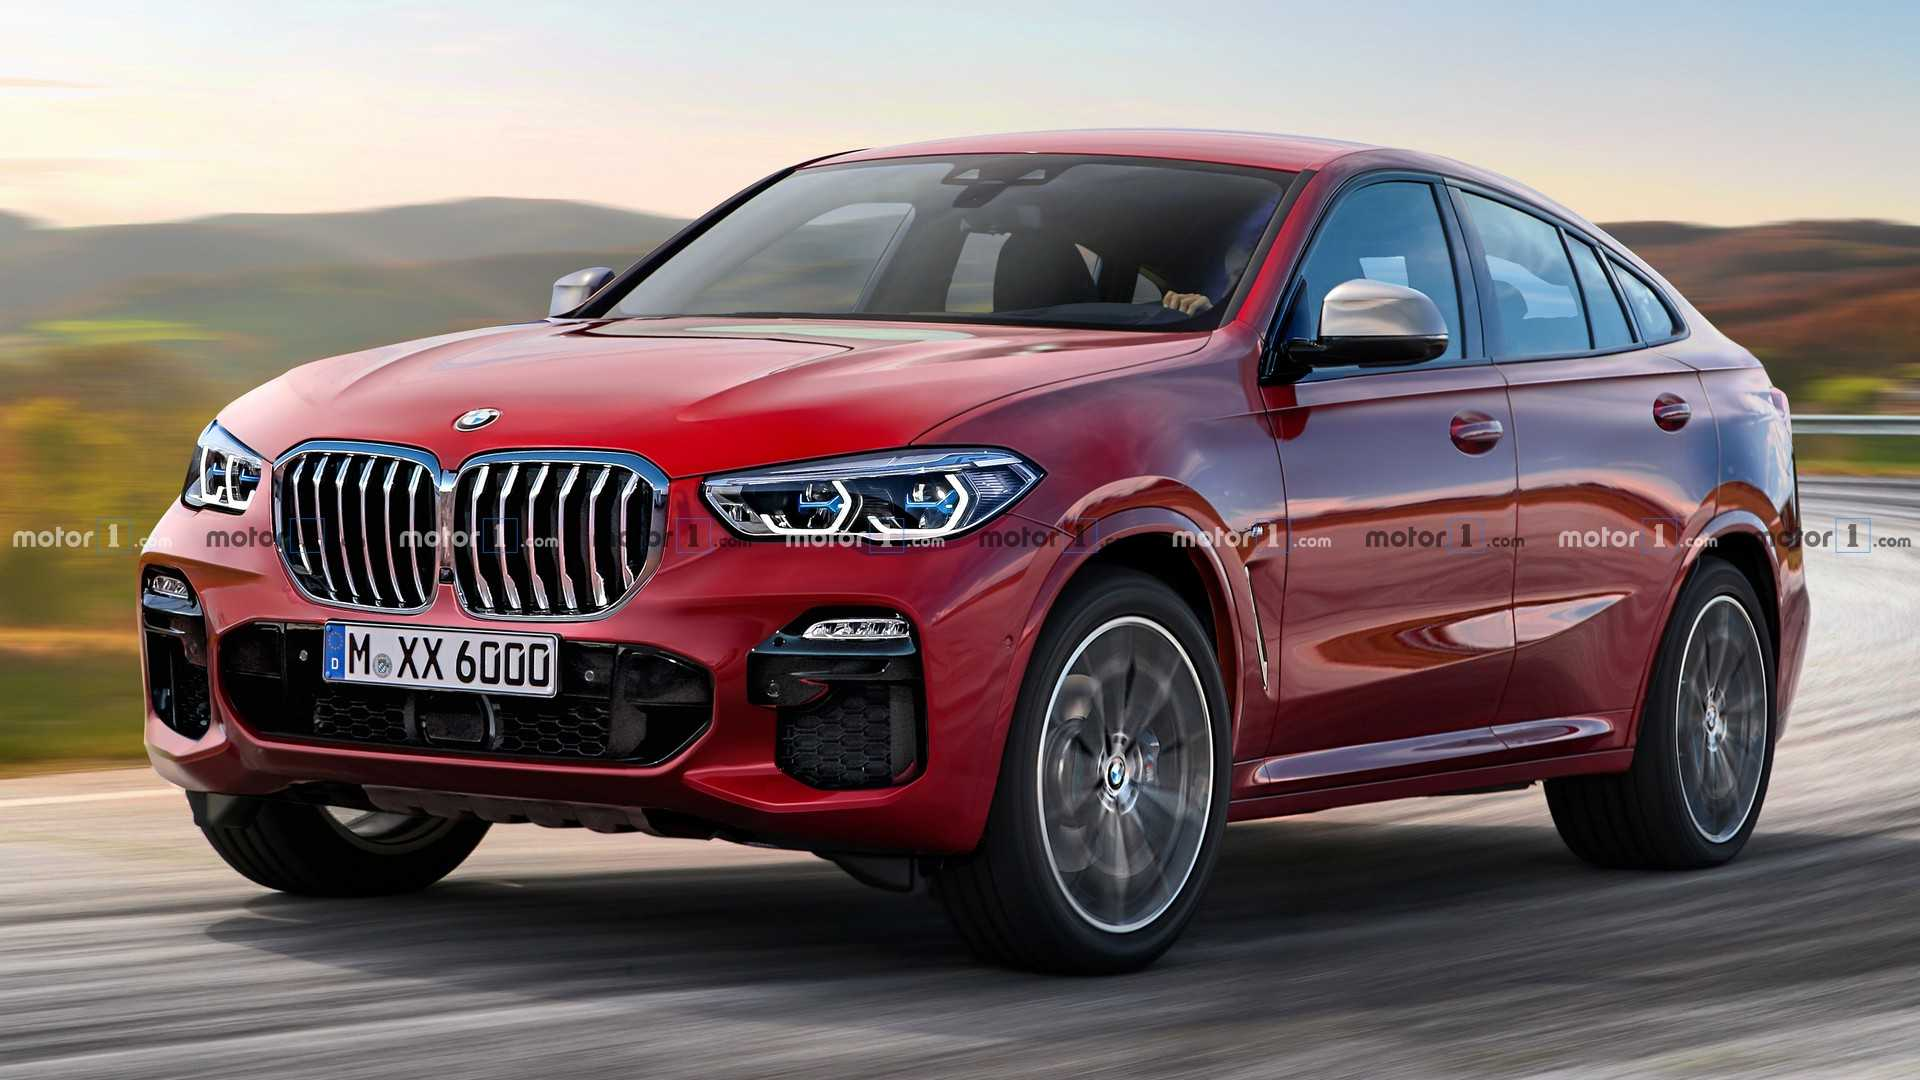 82 A 2020 BMW X6 Redesign And Review